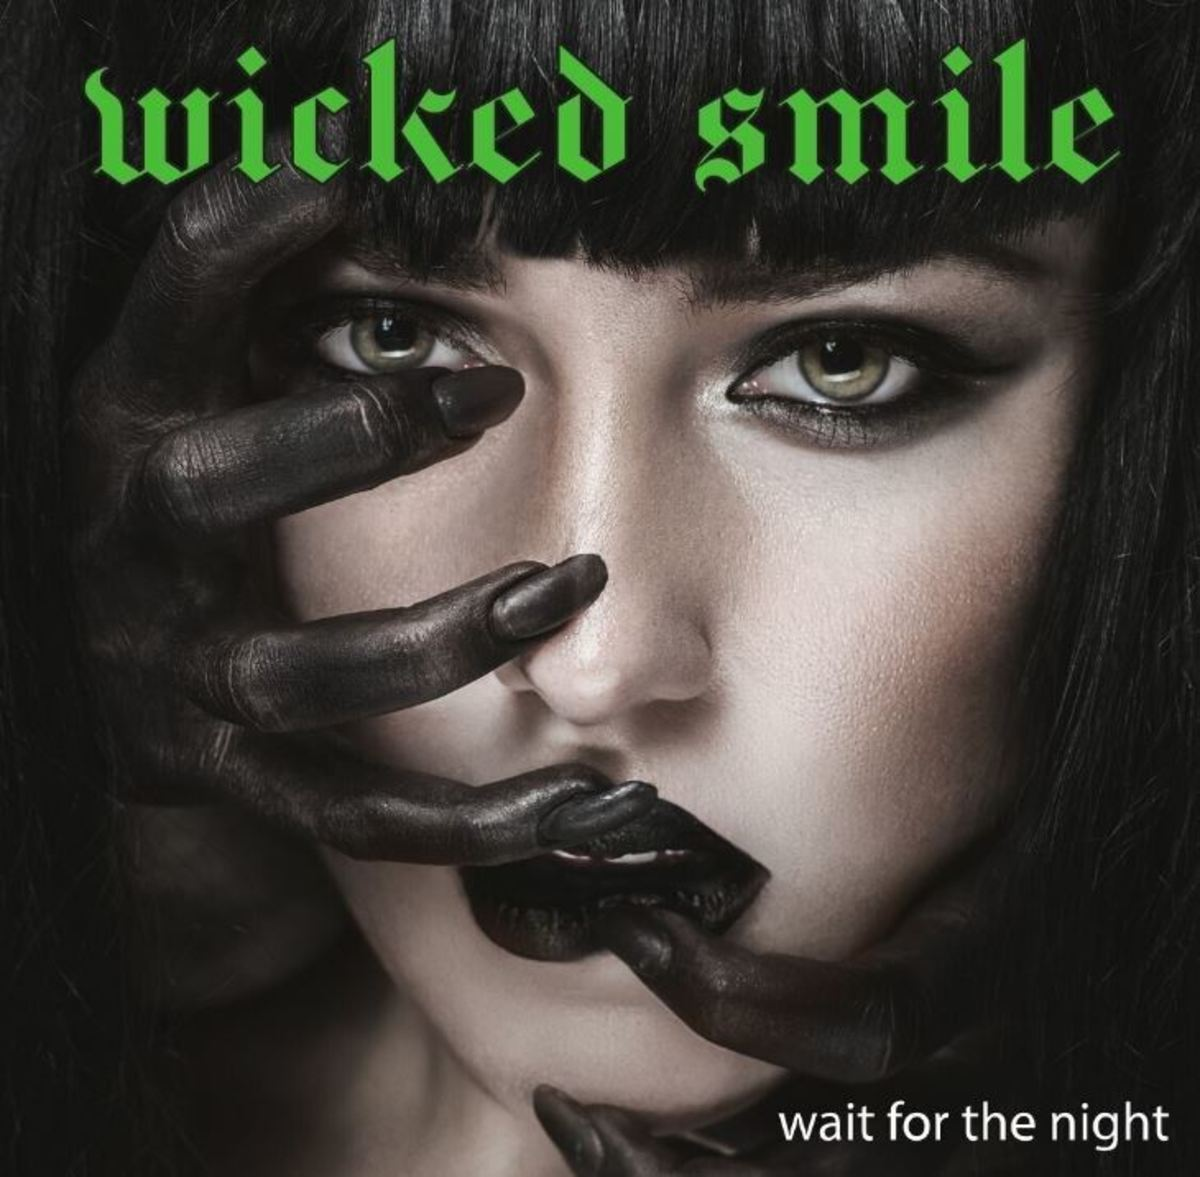 Wicked Smile,